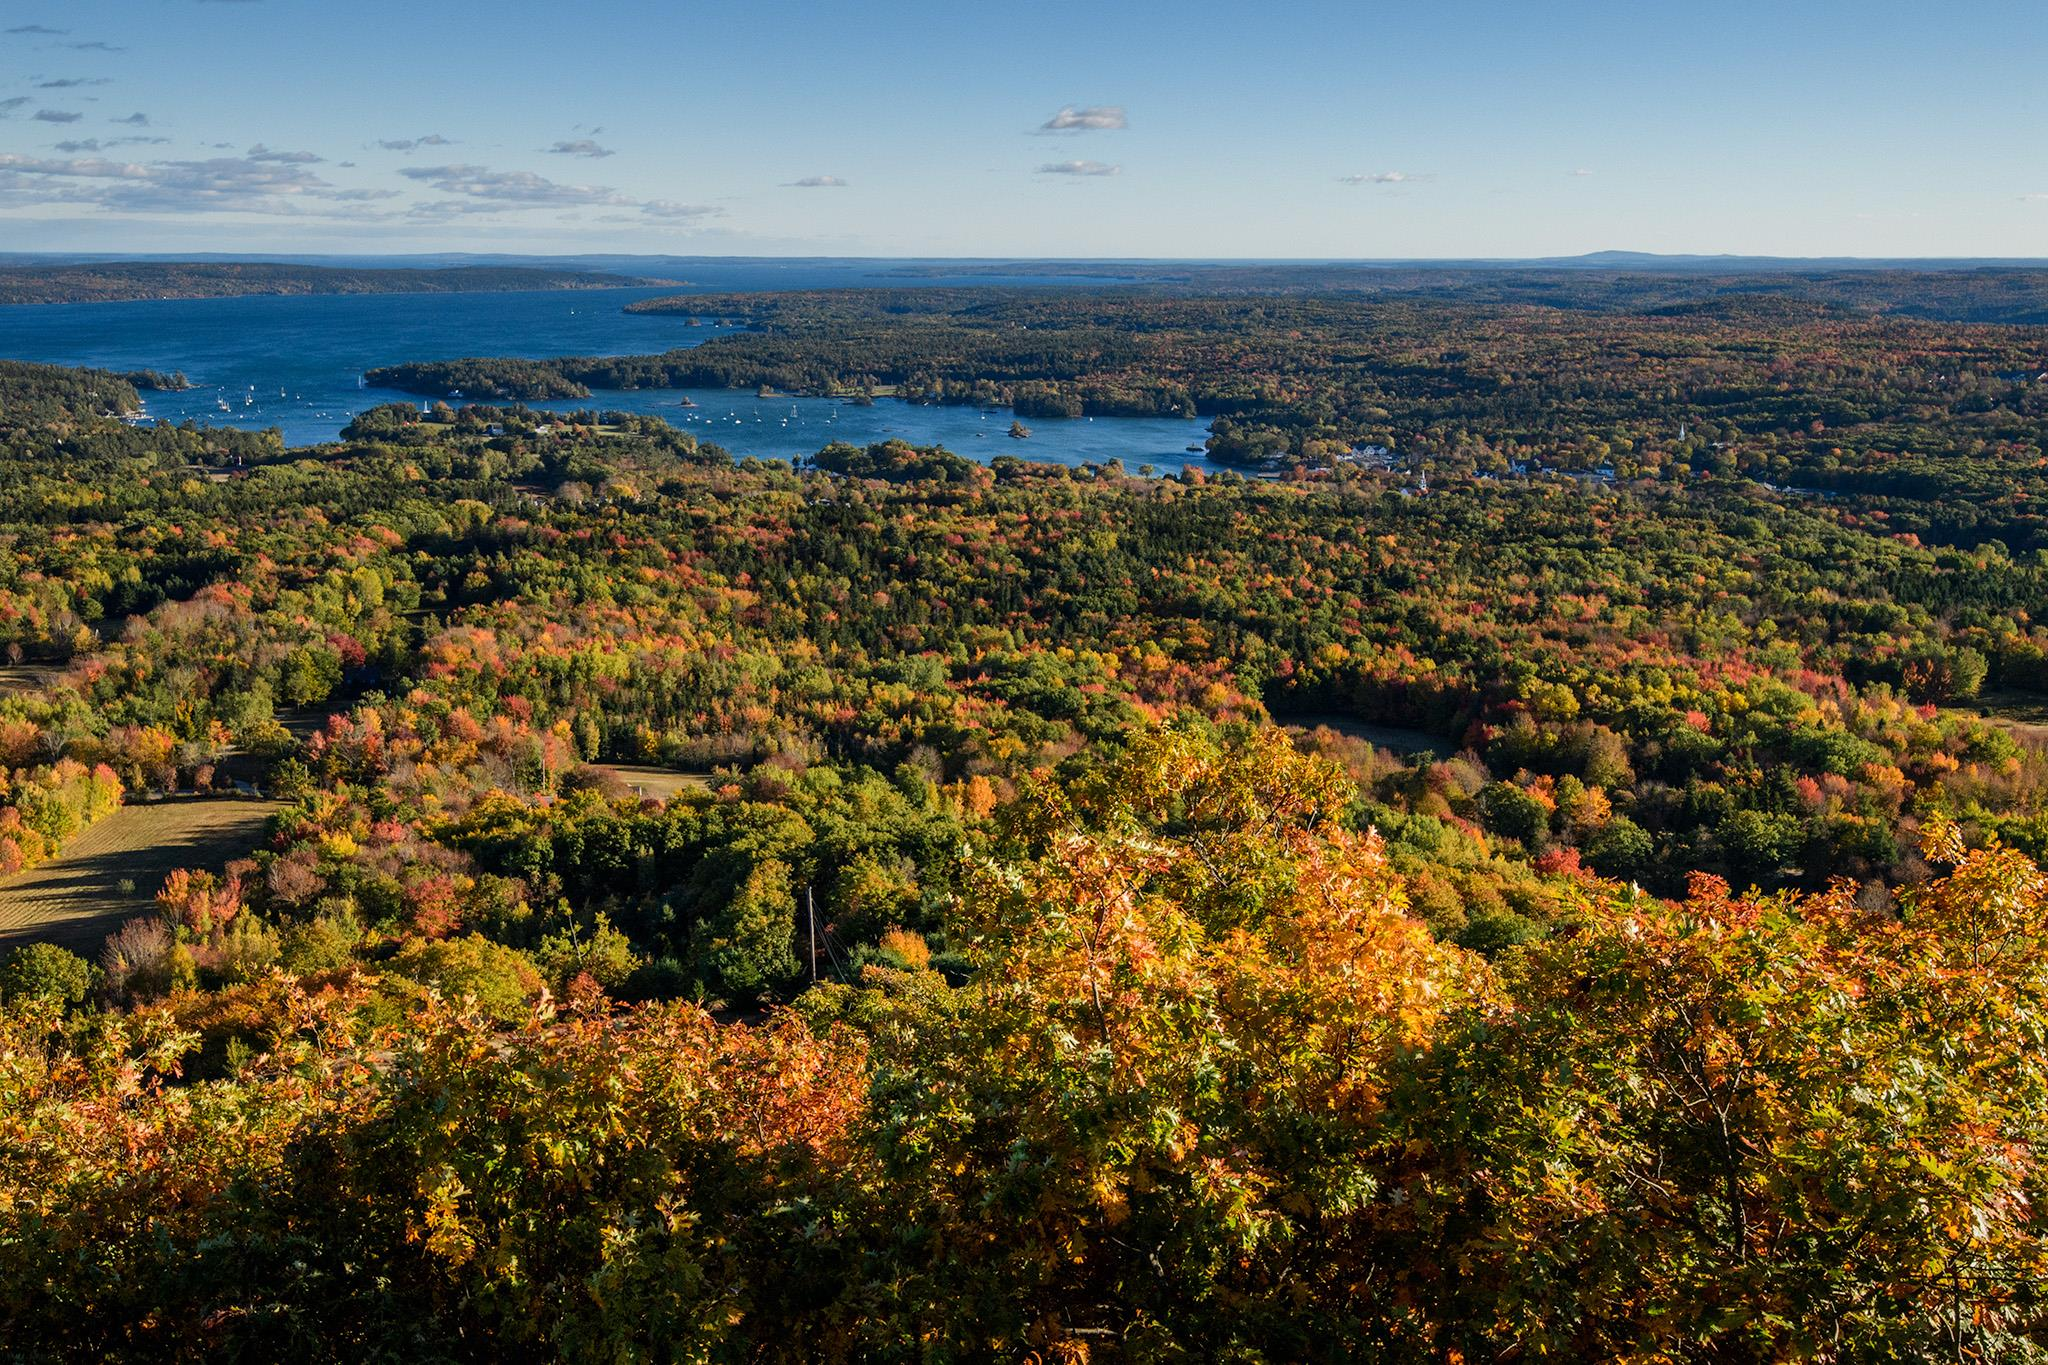 Blue Hill Bay from Blue Hill Mountain, trails maintained by Blue Hill Heritage Trust, who manage dozens of trails and walks through out the area. Including much easier ones through blueberry barrens or along the shores of the ocean.